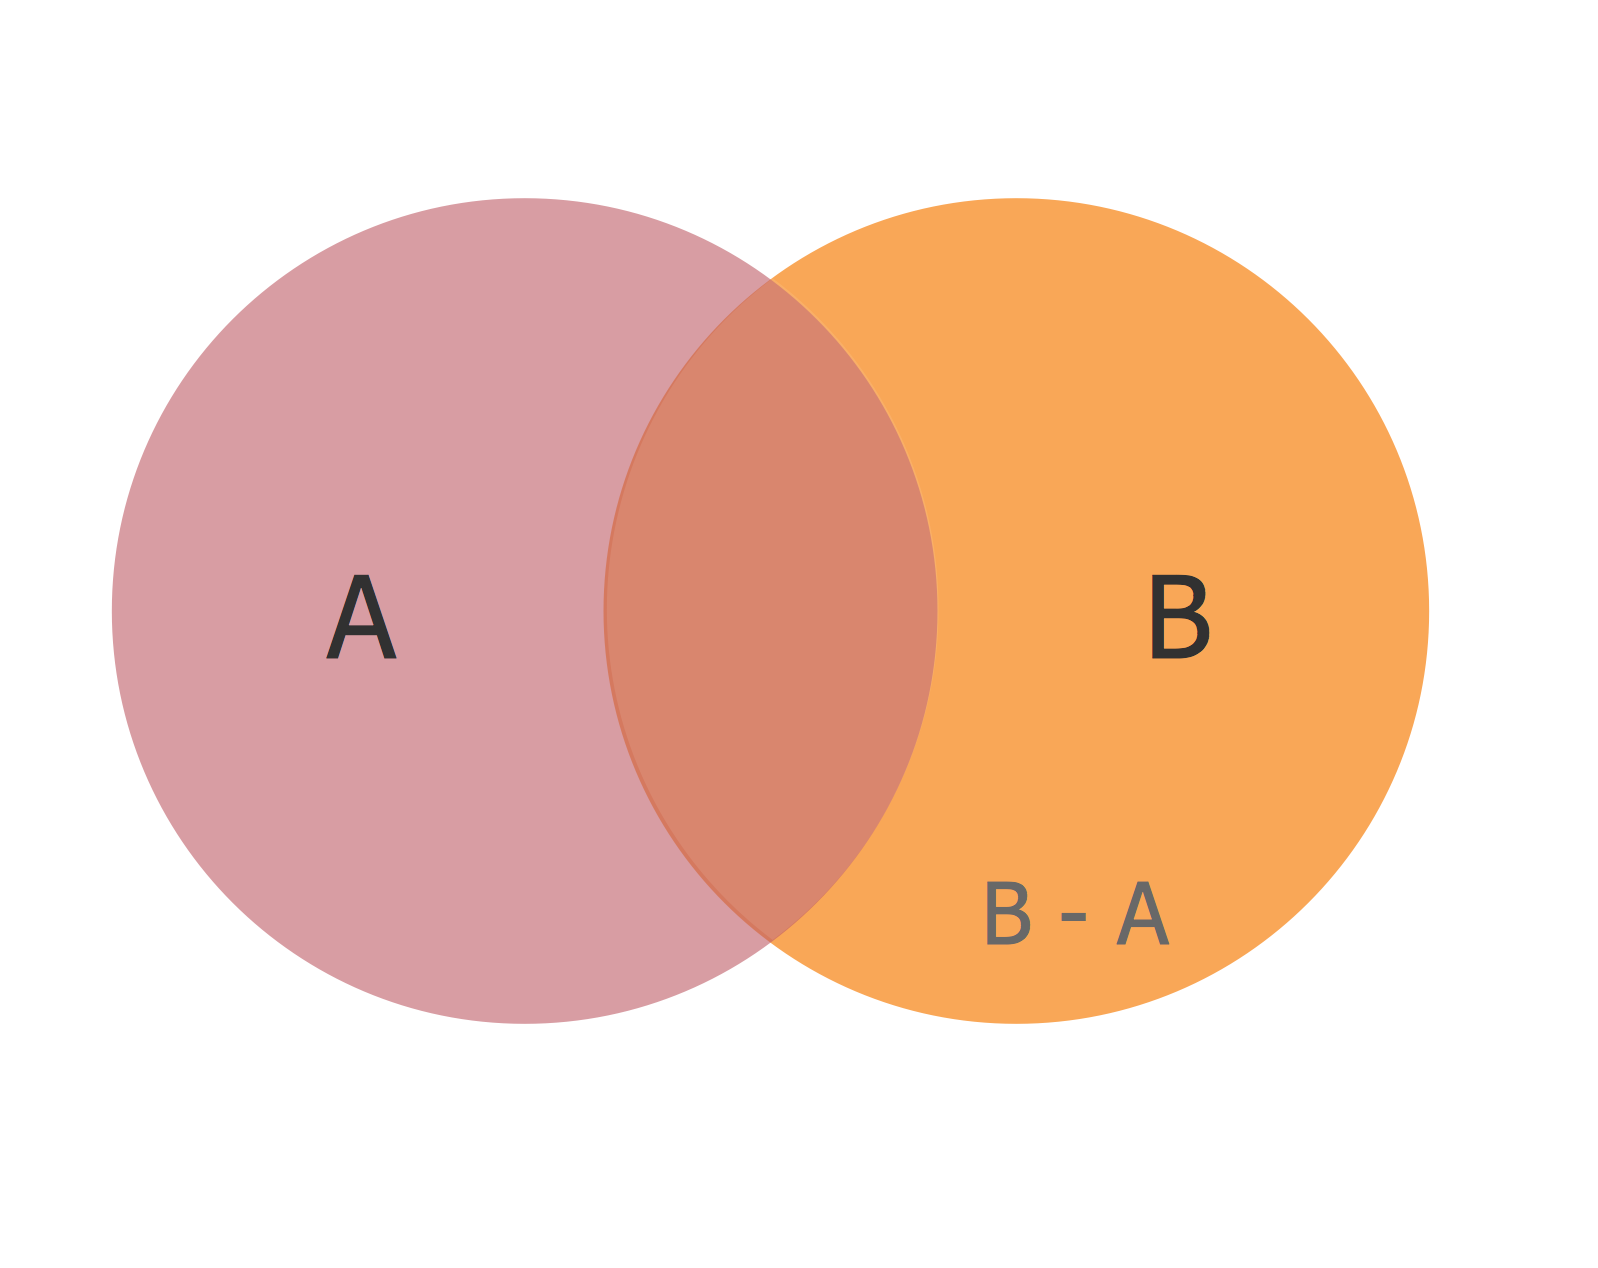 Basic circles venn diagram venn diagram example basic circles venn diagram example 1 ccuart Image collections